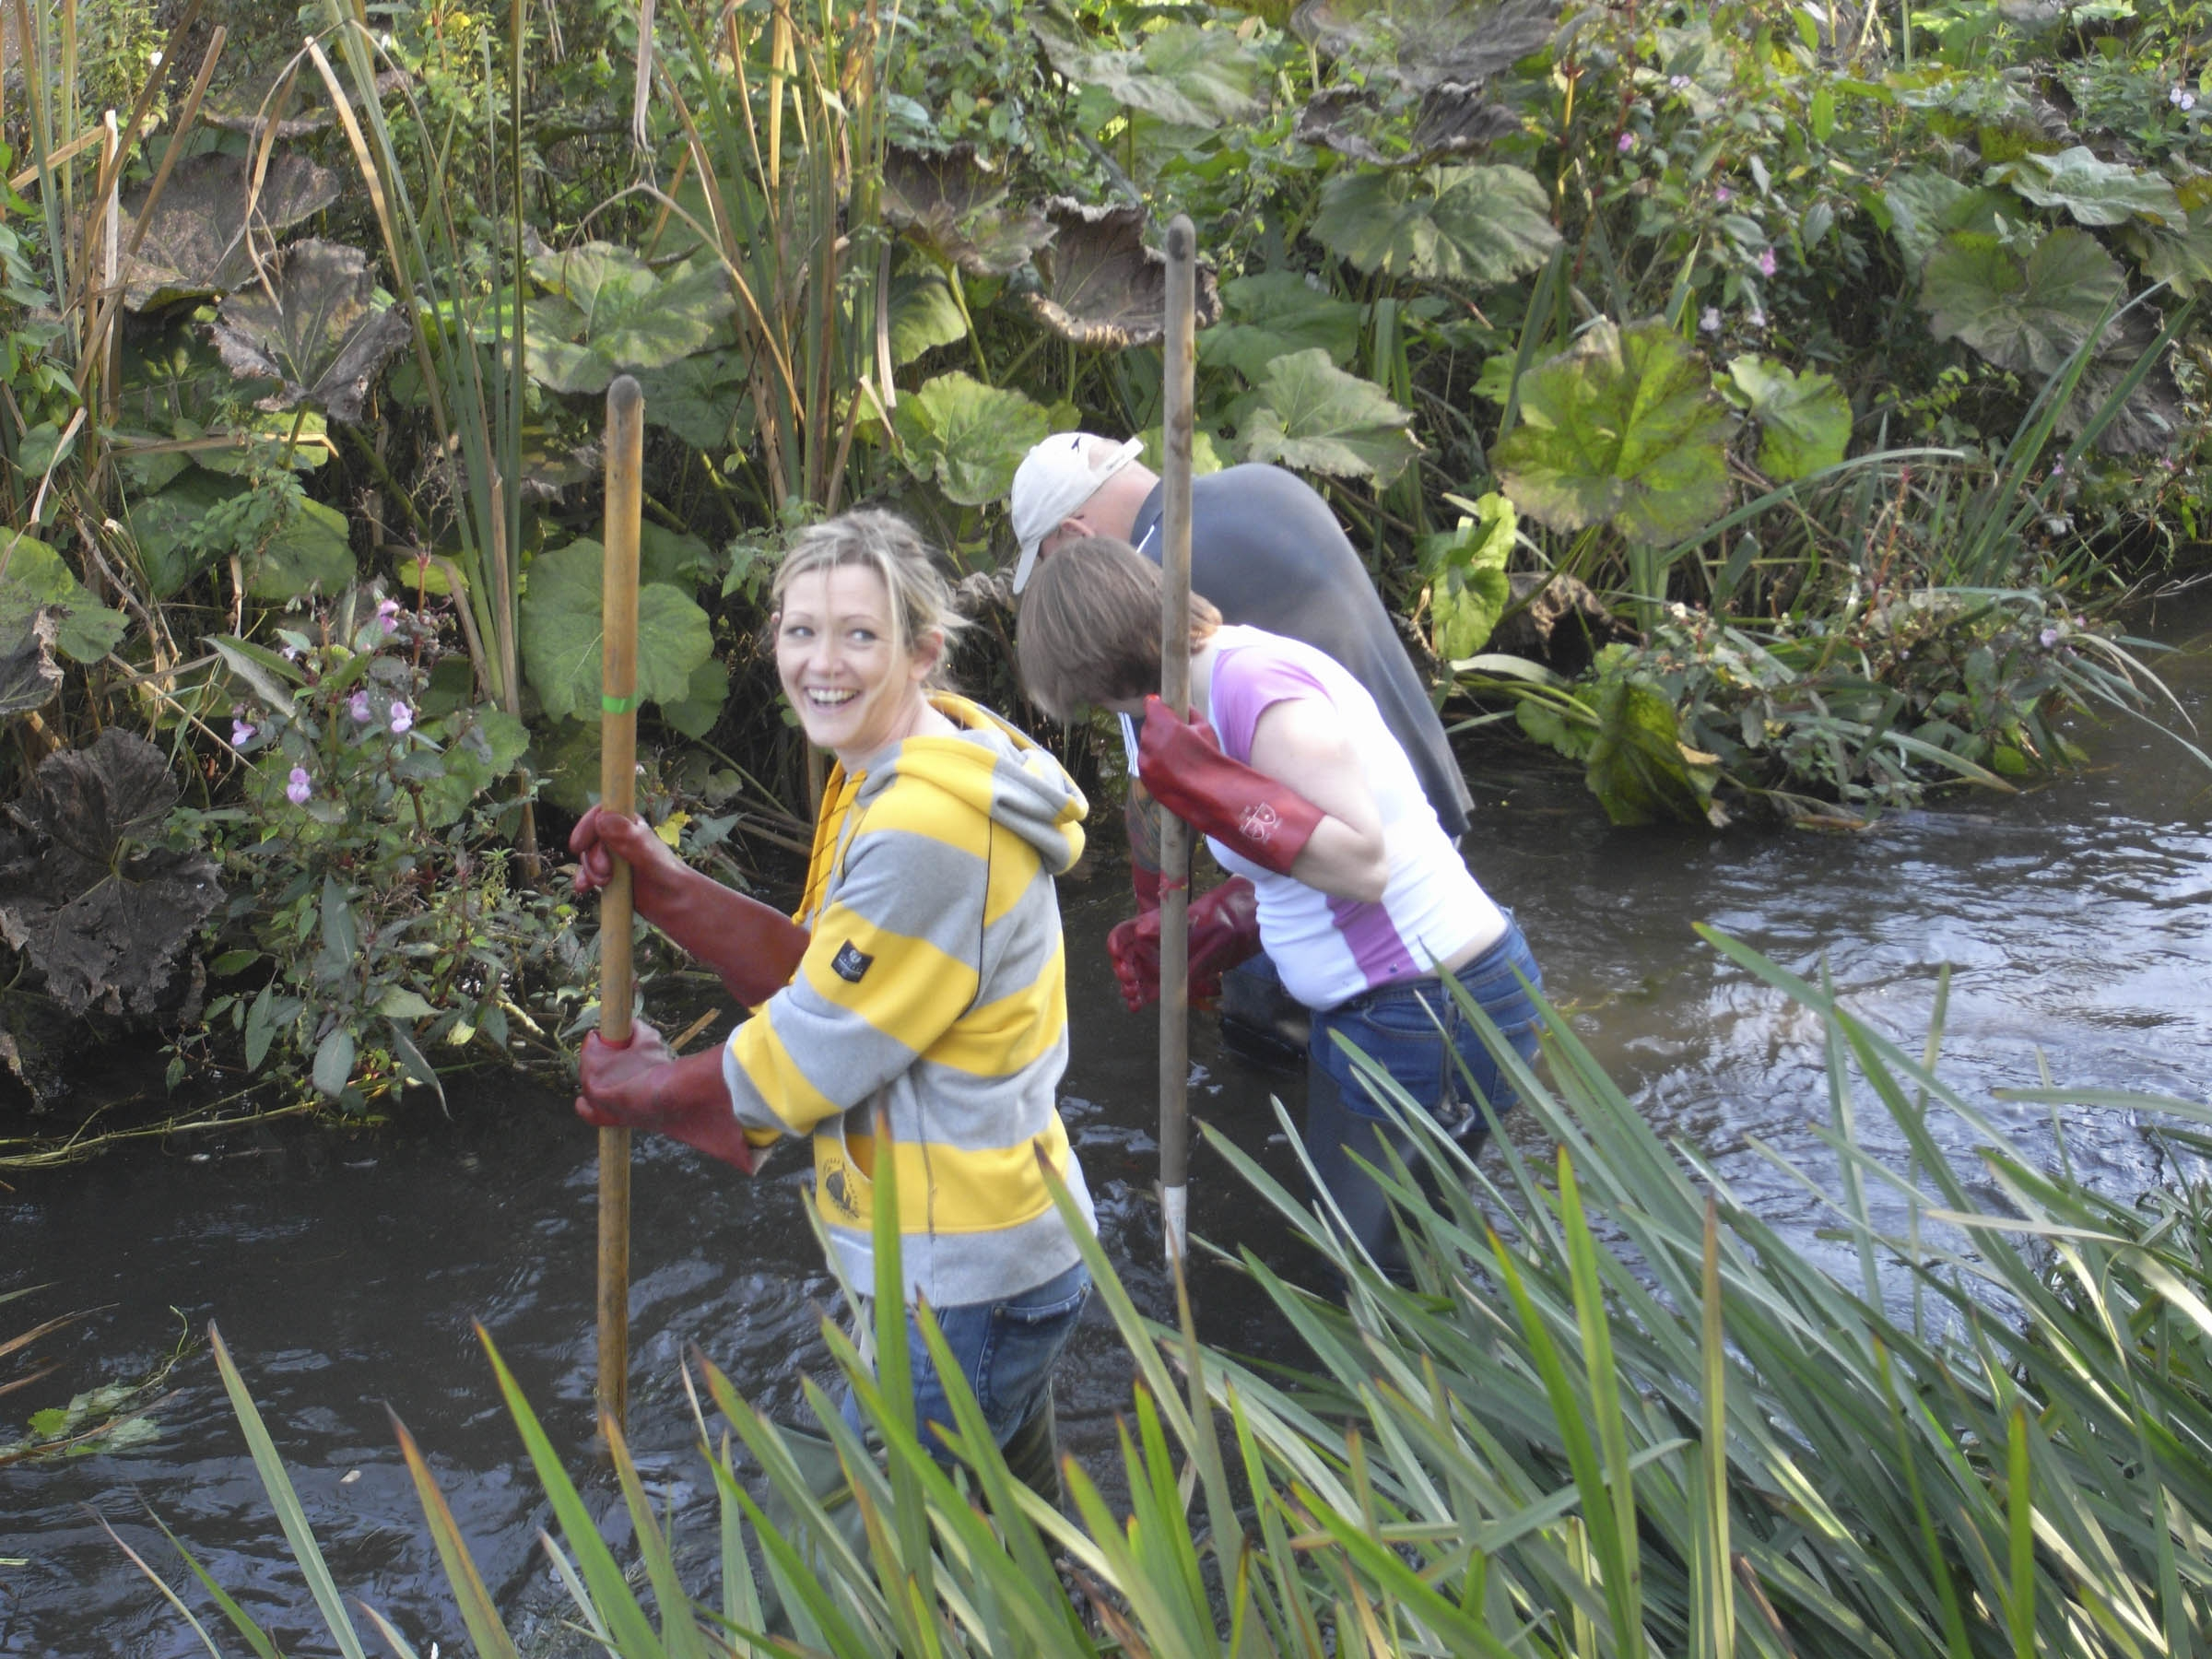 Volunteers clean the river Wye as part of the 'revive the Wye project'.